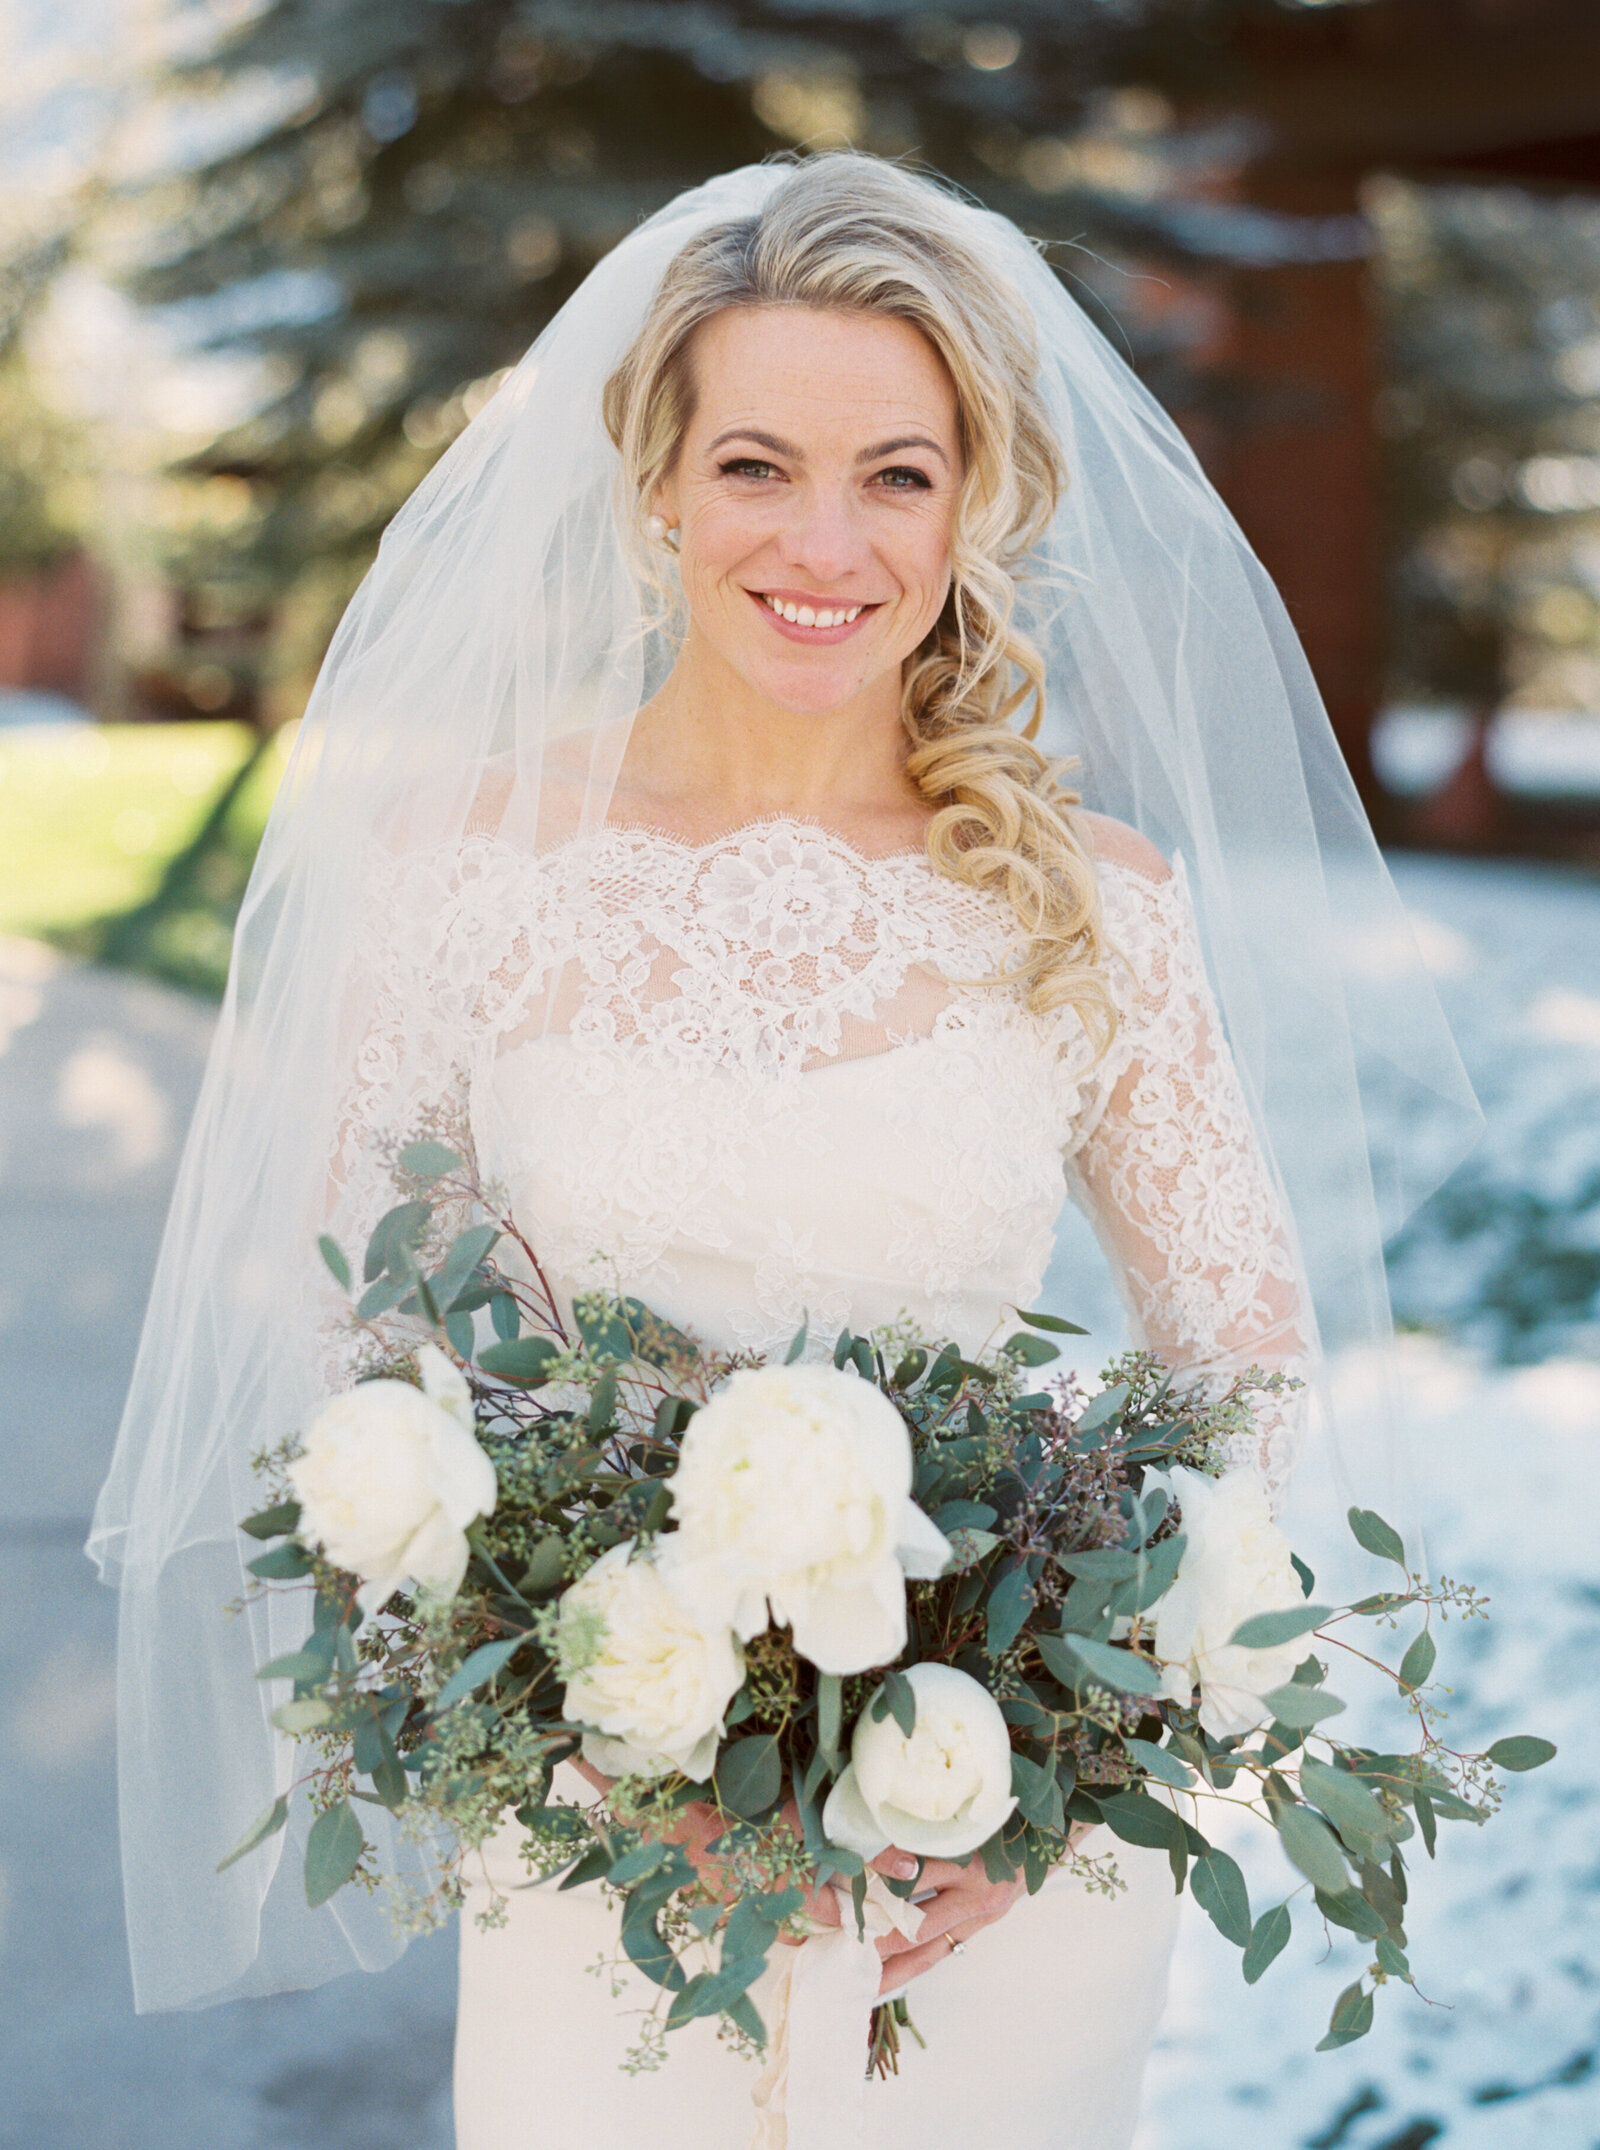 Aspen_Wedding_Photographer_Colorado_Joshua_Aull_Photography_0197